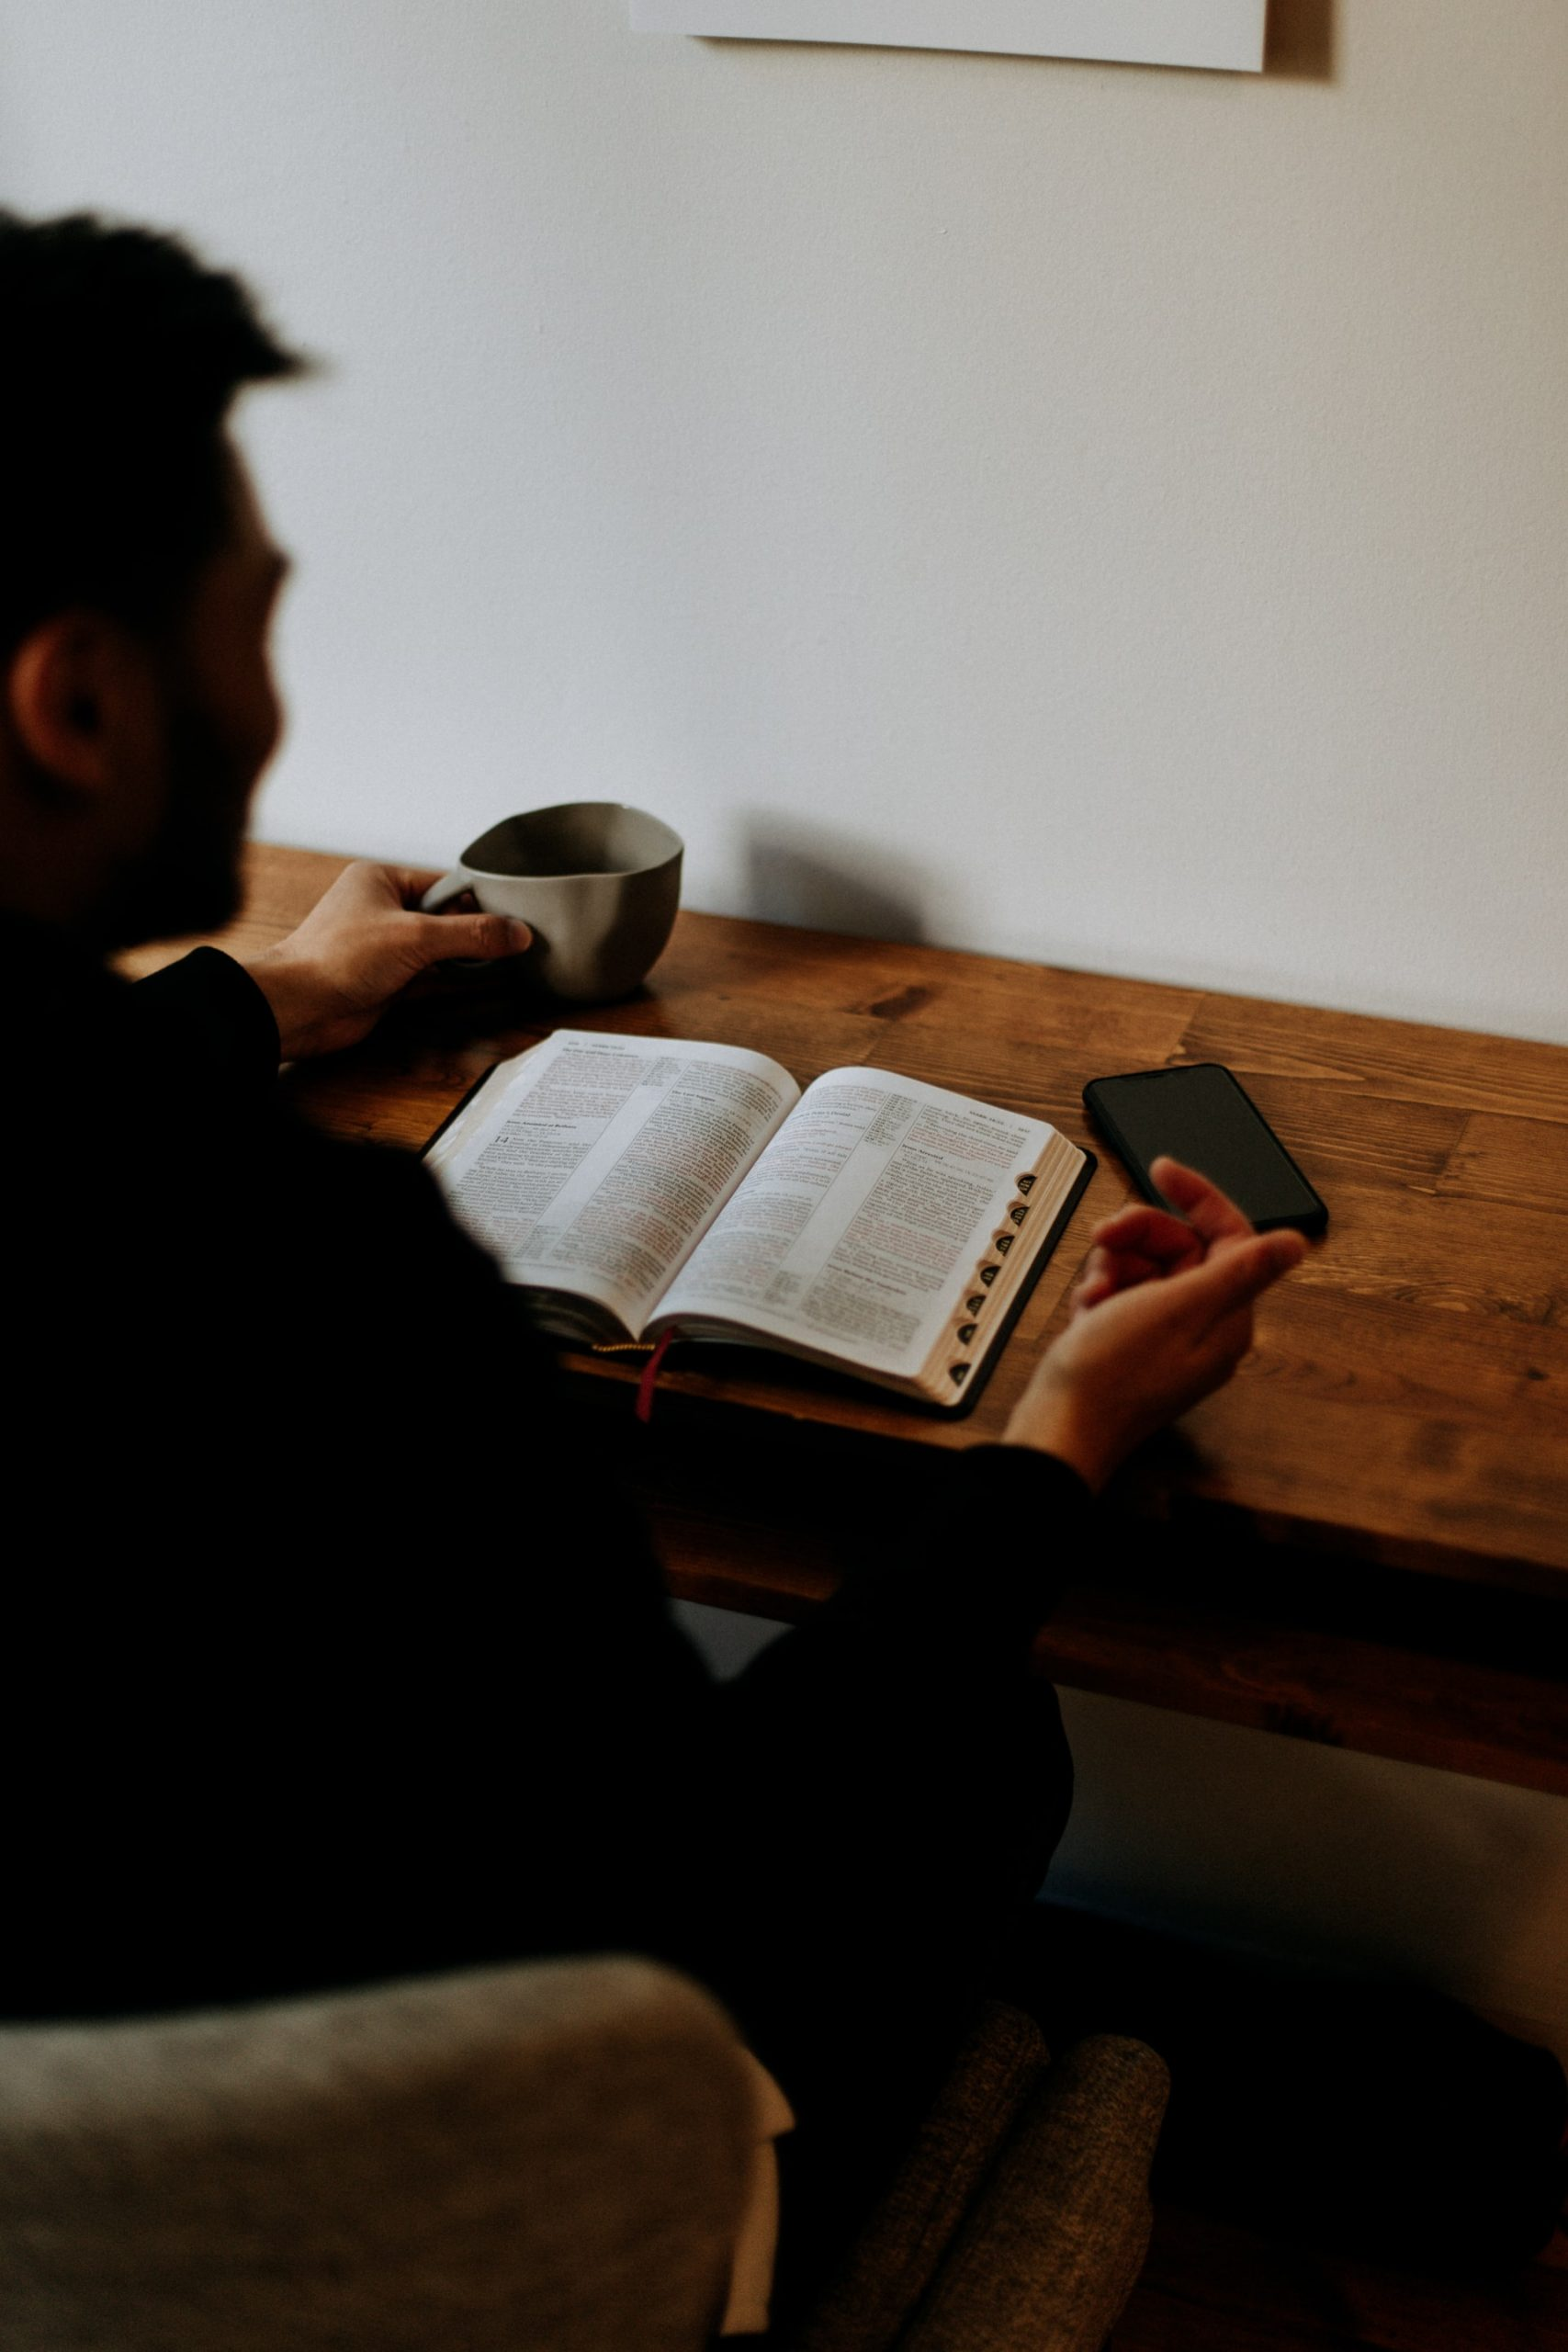 The Spiritual Man puts God and others ahead of himself